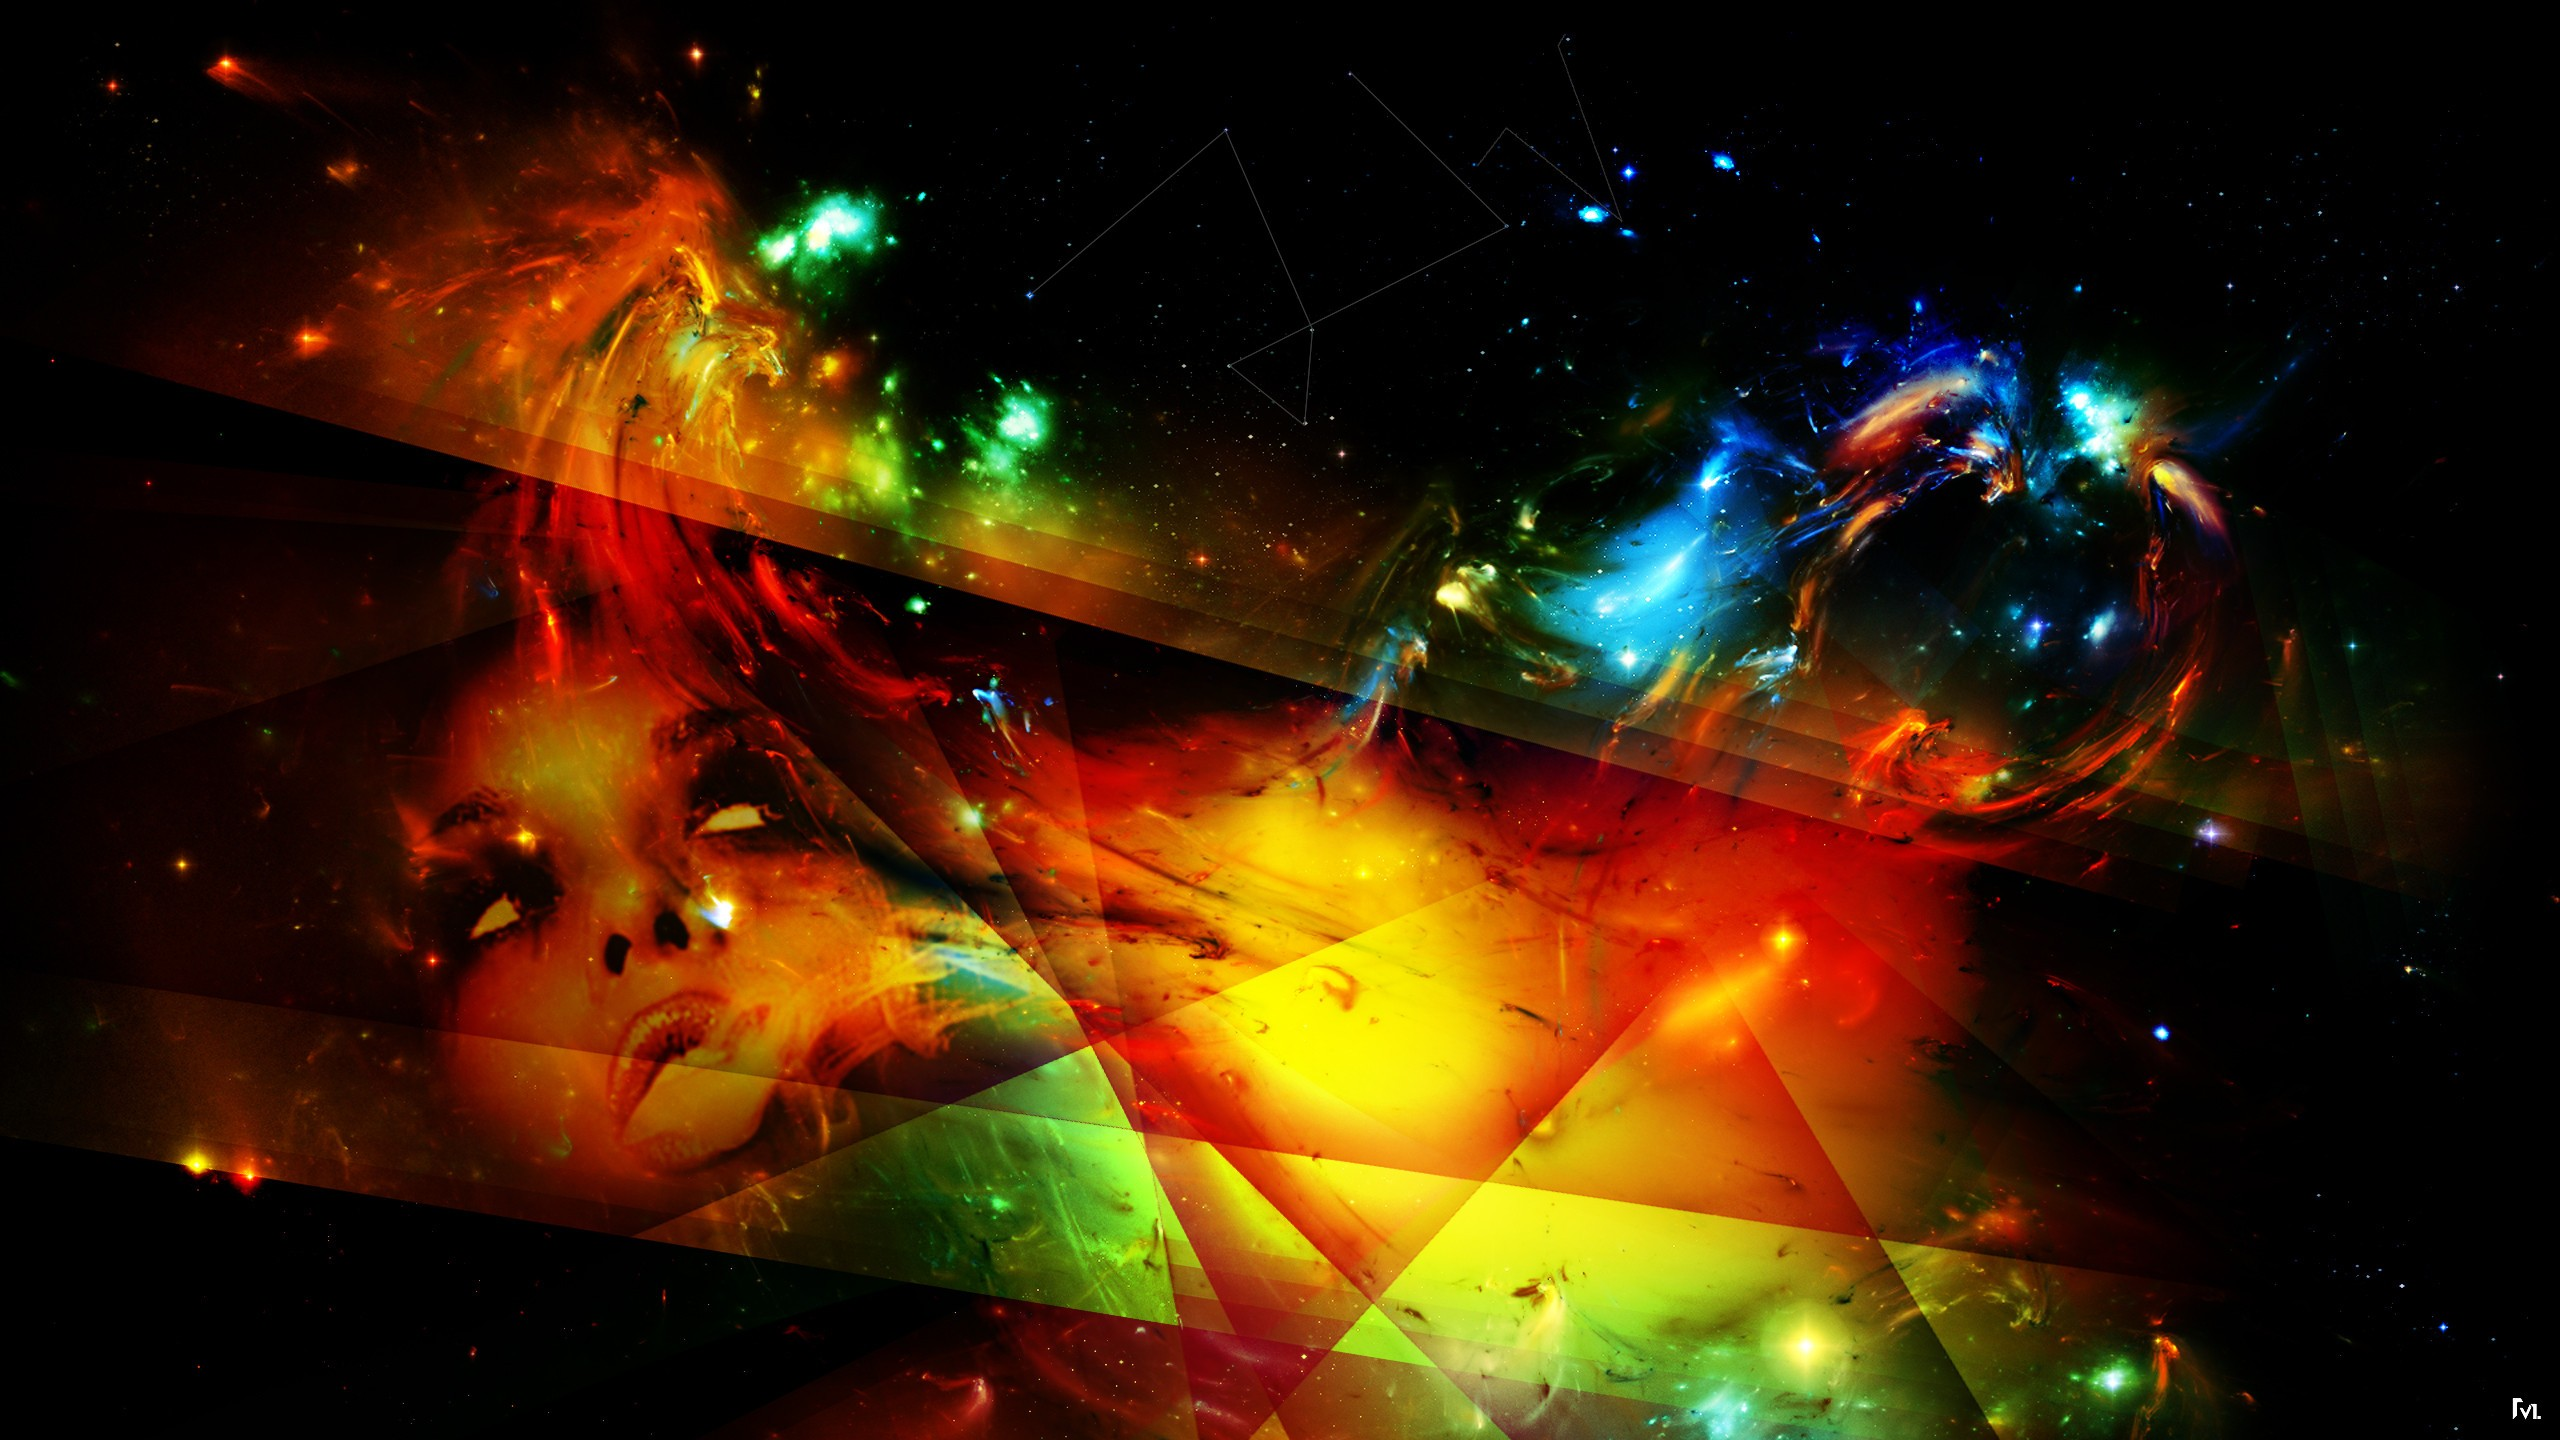 Free Hd Wallpapers Absract Wallpapers Desktop Wallpapers: Abstract Art Wallpaper ·① Download Free HD Backgrounds For